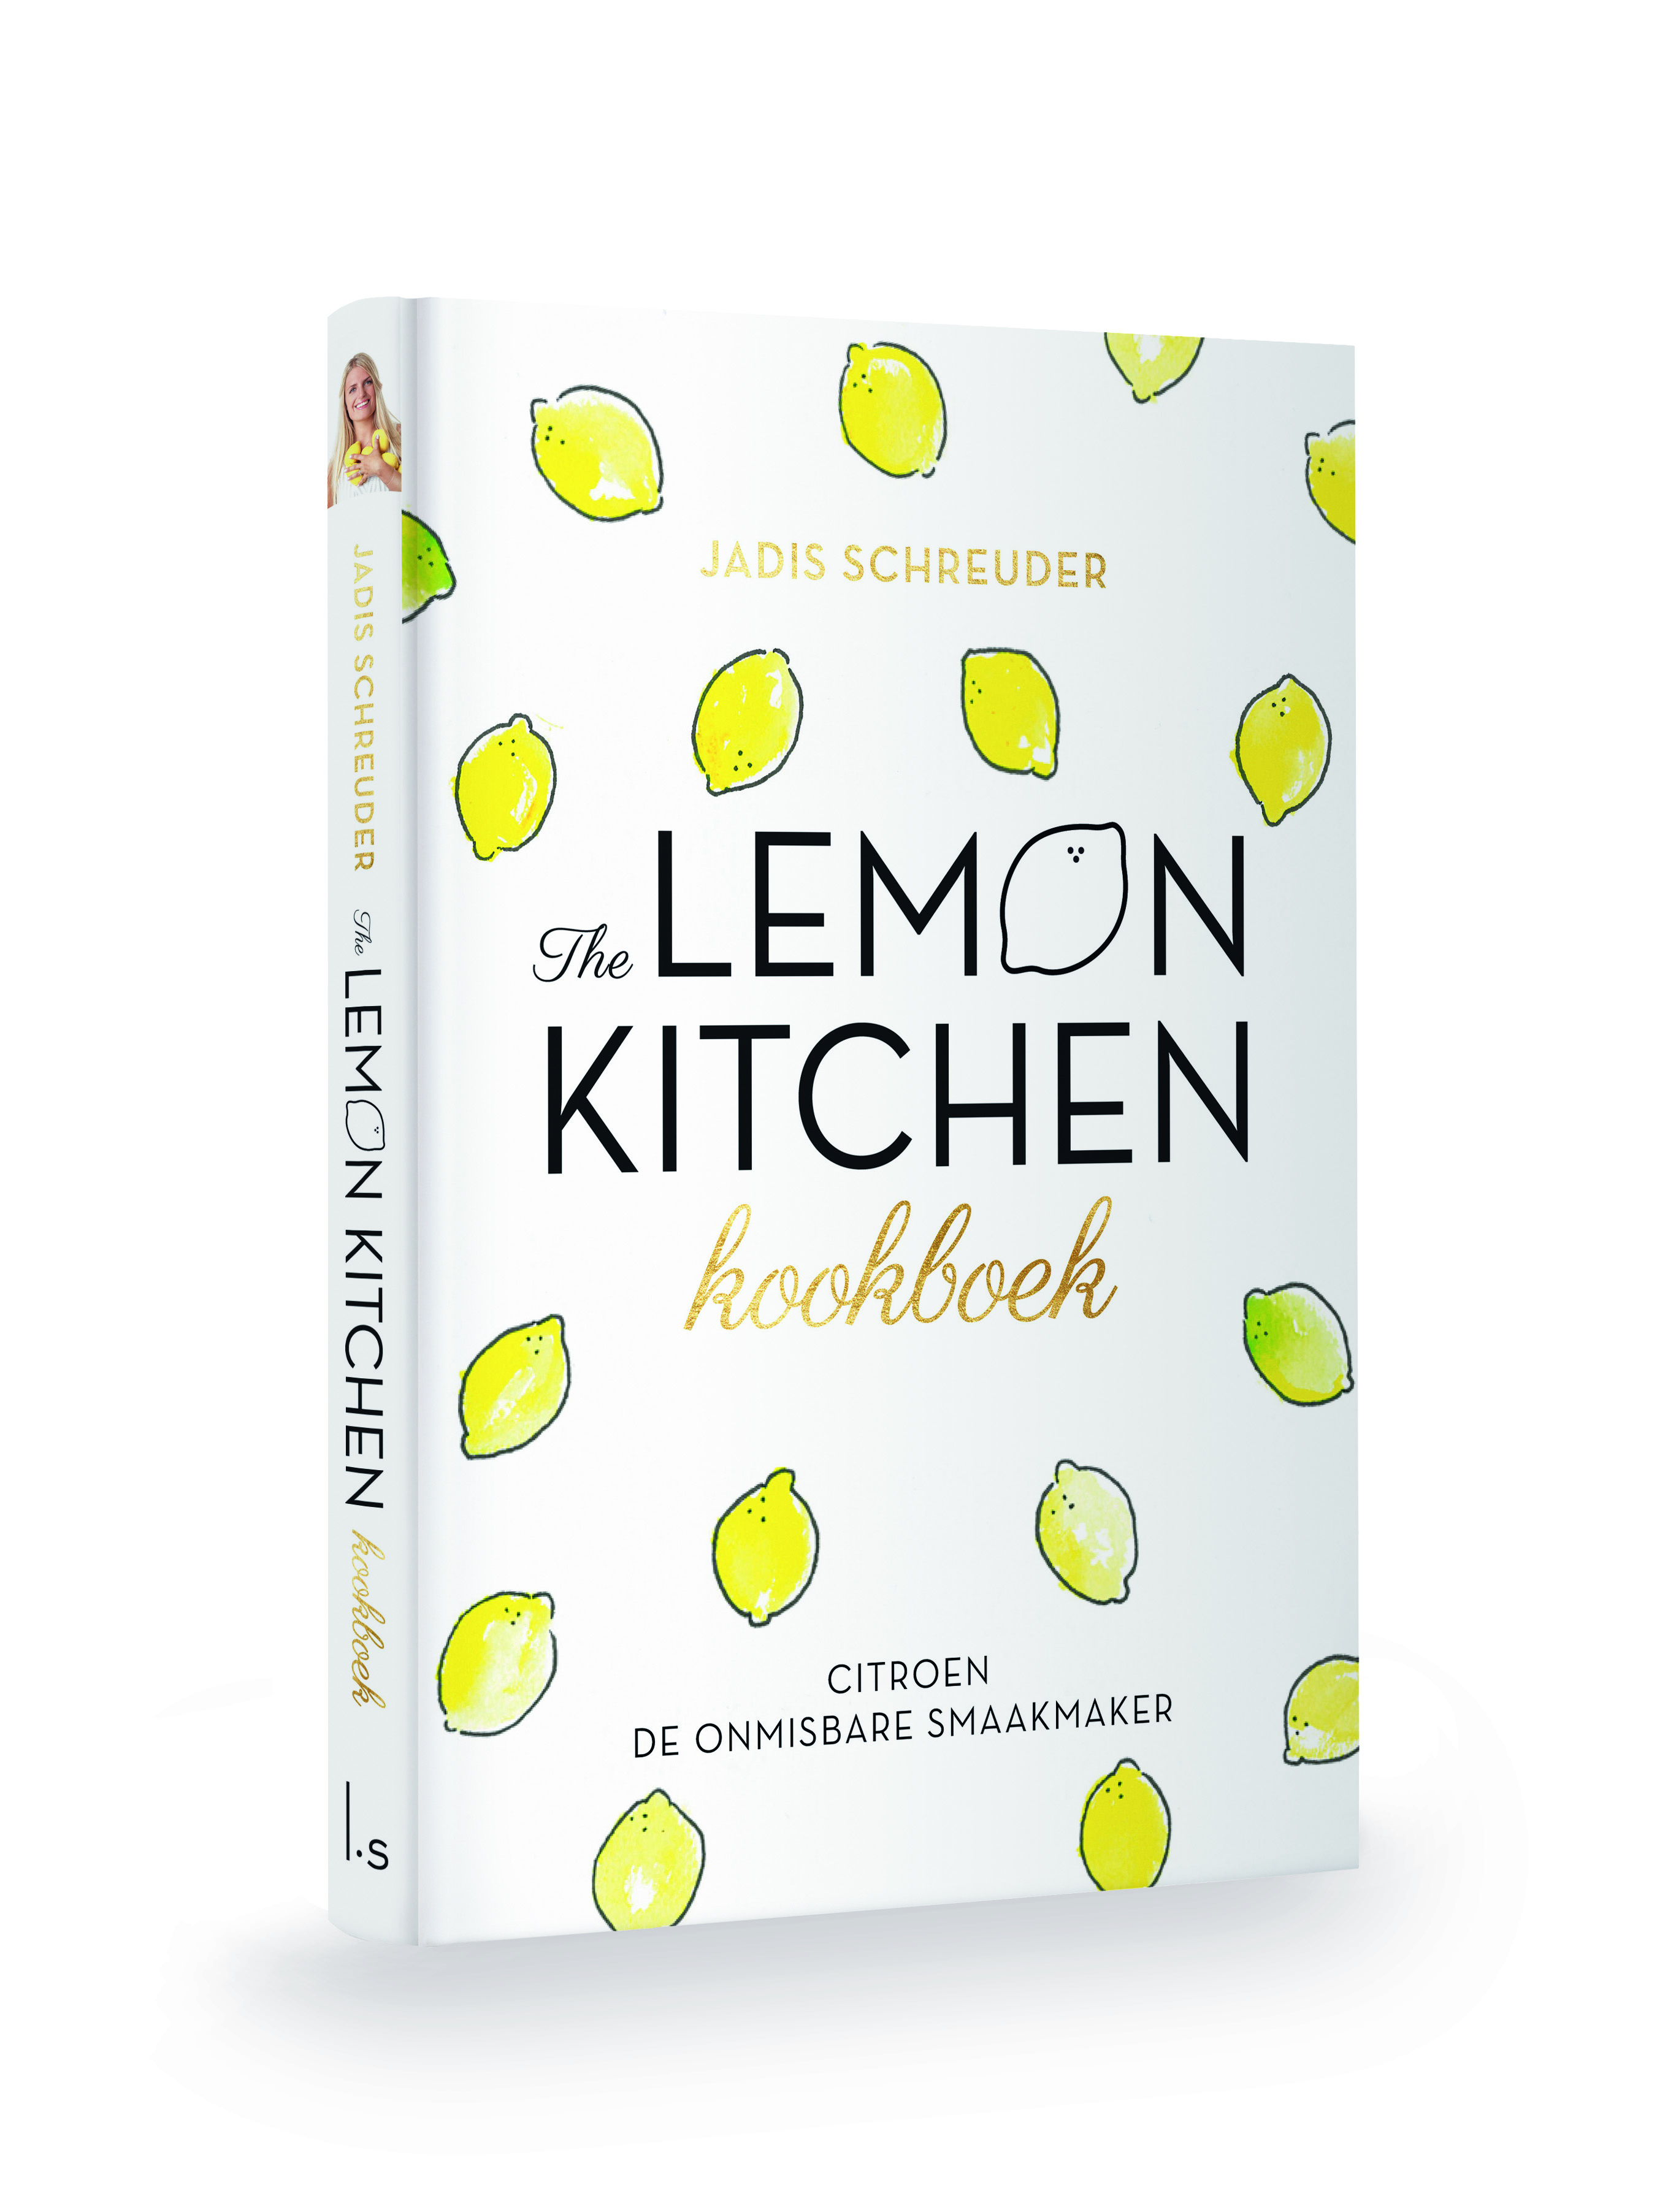 The Lemon Kitchen + recept voor citroentartelettes